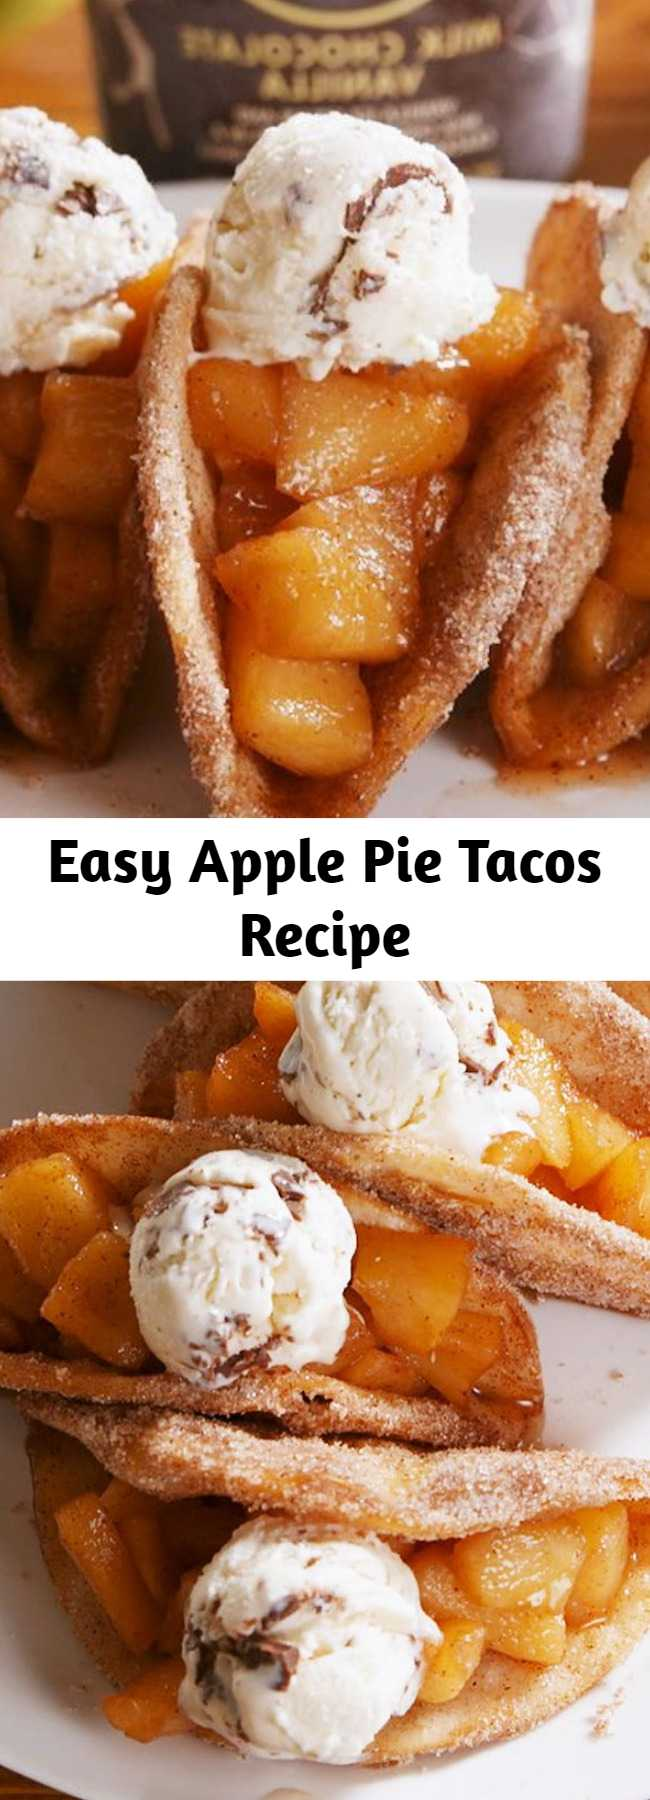 Easy Apple Pie Tacos Recipe - Don't be intimidated by the frying! It's actually easy. Once the tortilla hits the hot oil, it crisps up and keeps it shape quickly. Just know you'll need to use your tongs pretty much the whole time. #applepie #desserttacos #applepierecipes #apple #cinnamon #fruitdesserts #vanillaicecream